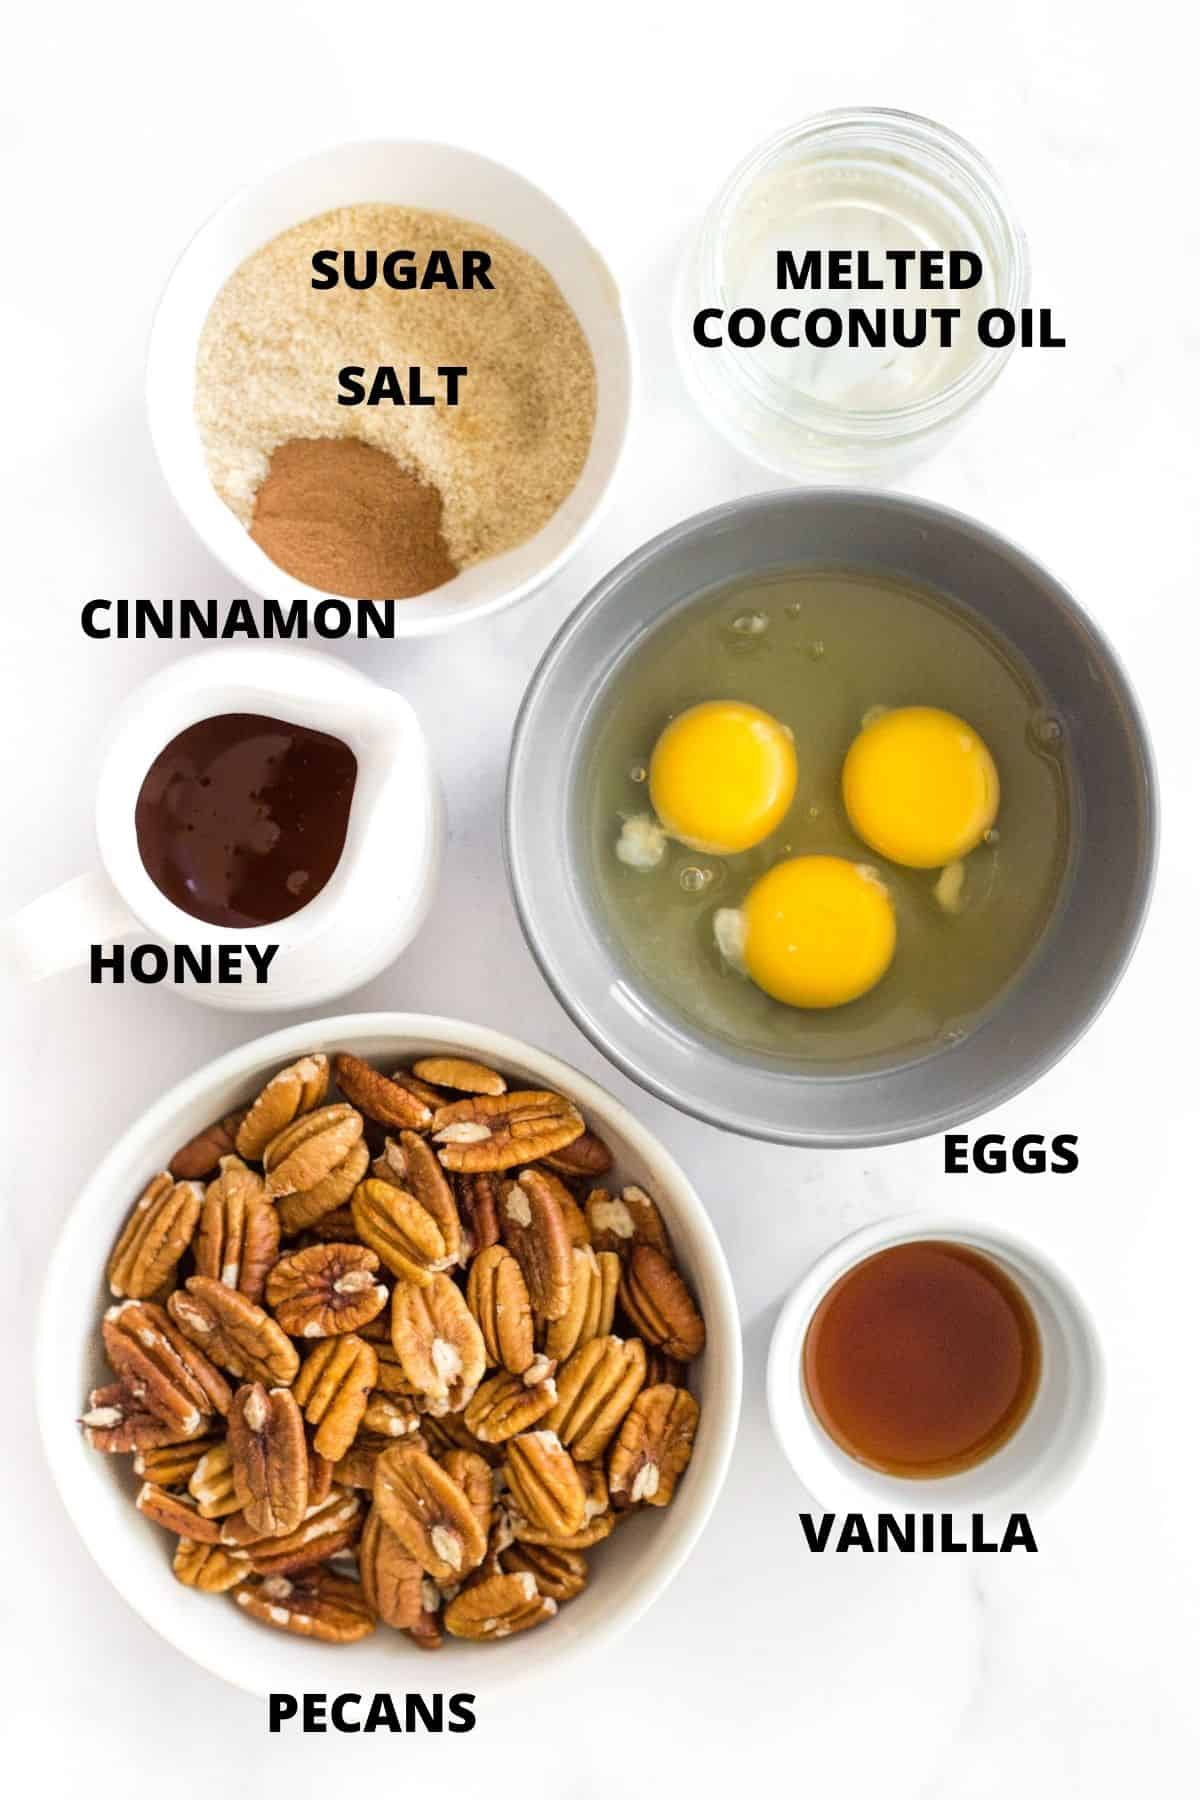 Labeled ingredients for pecan pie filling laid out on marble board.